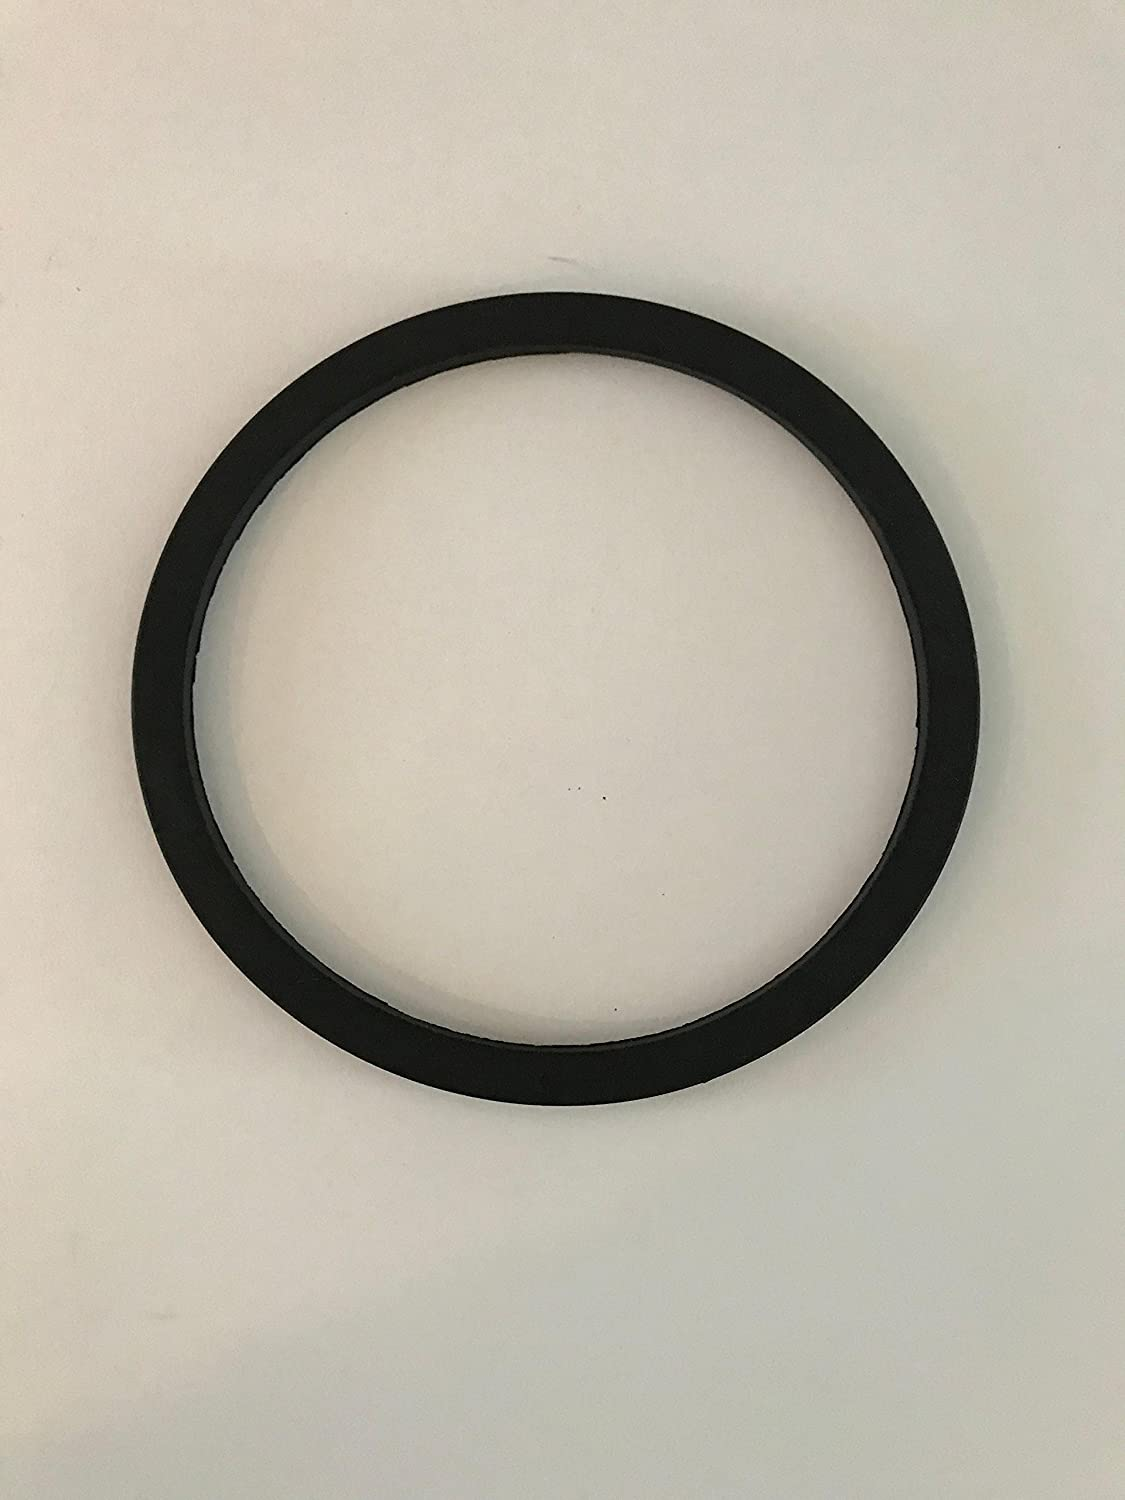 Base tank sight glass gasket 8 1/4� round for Firbimatic, union, realstar, G12234 401317